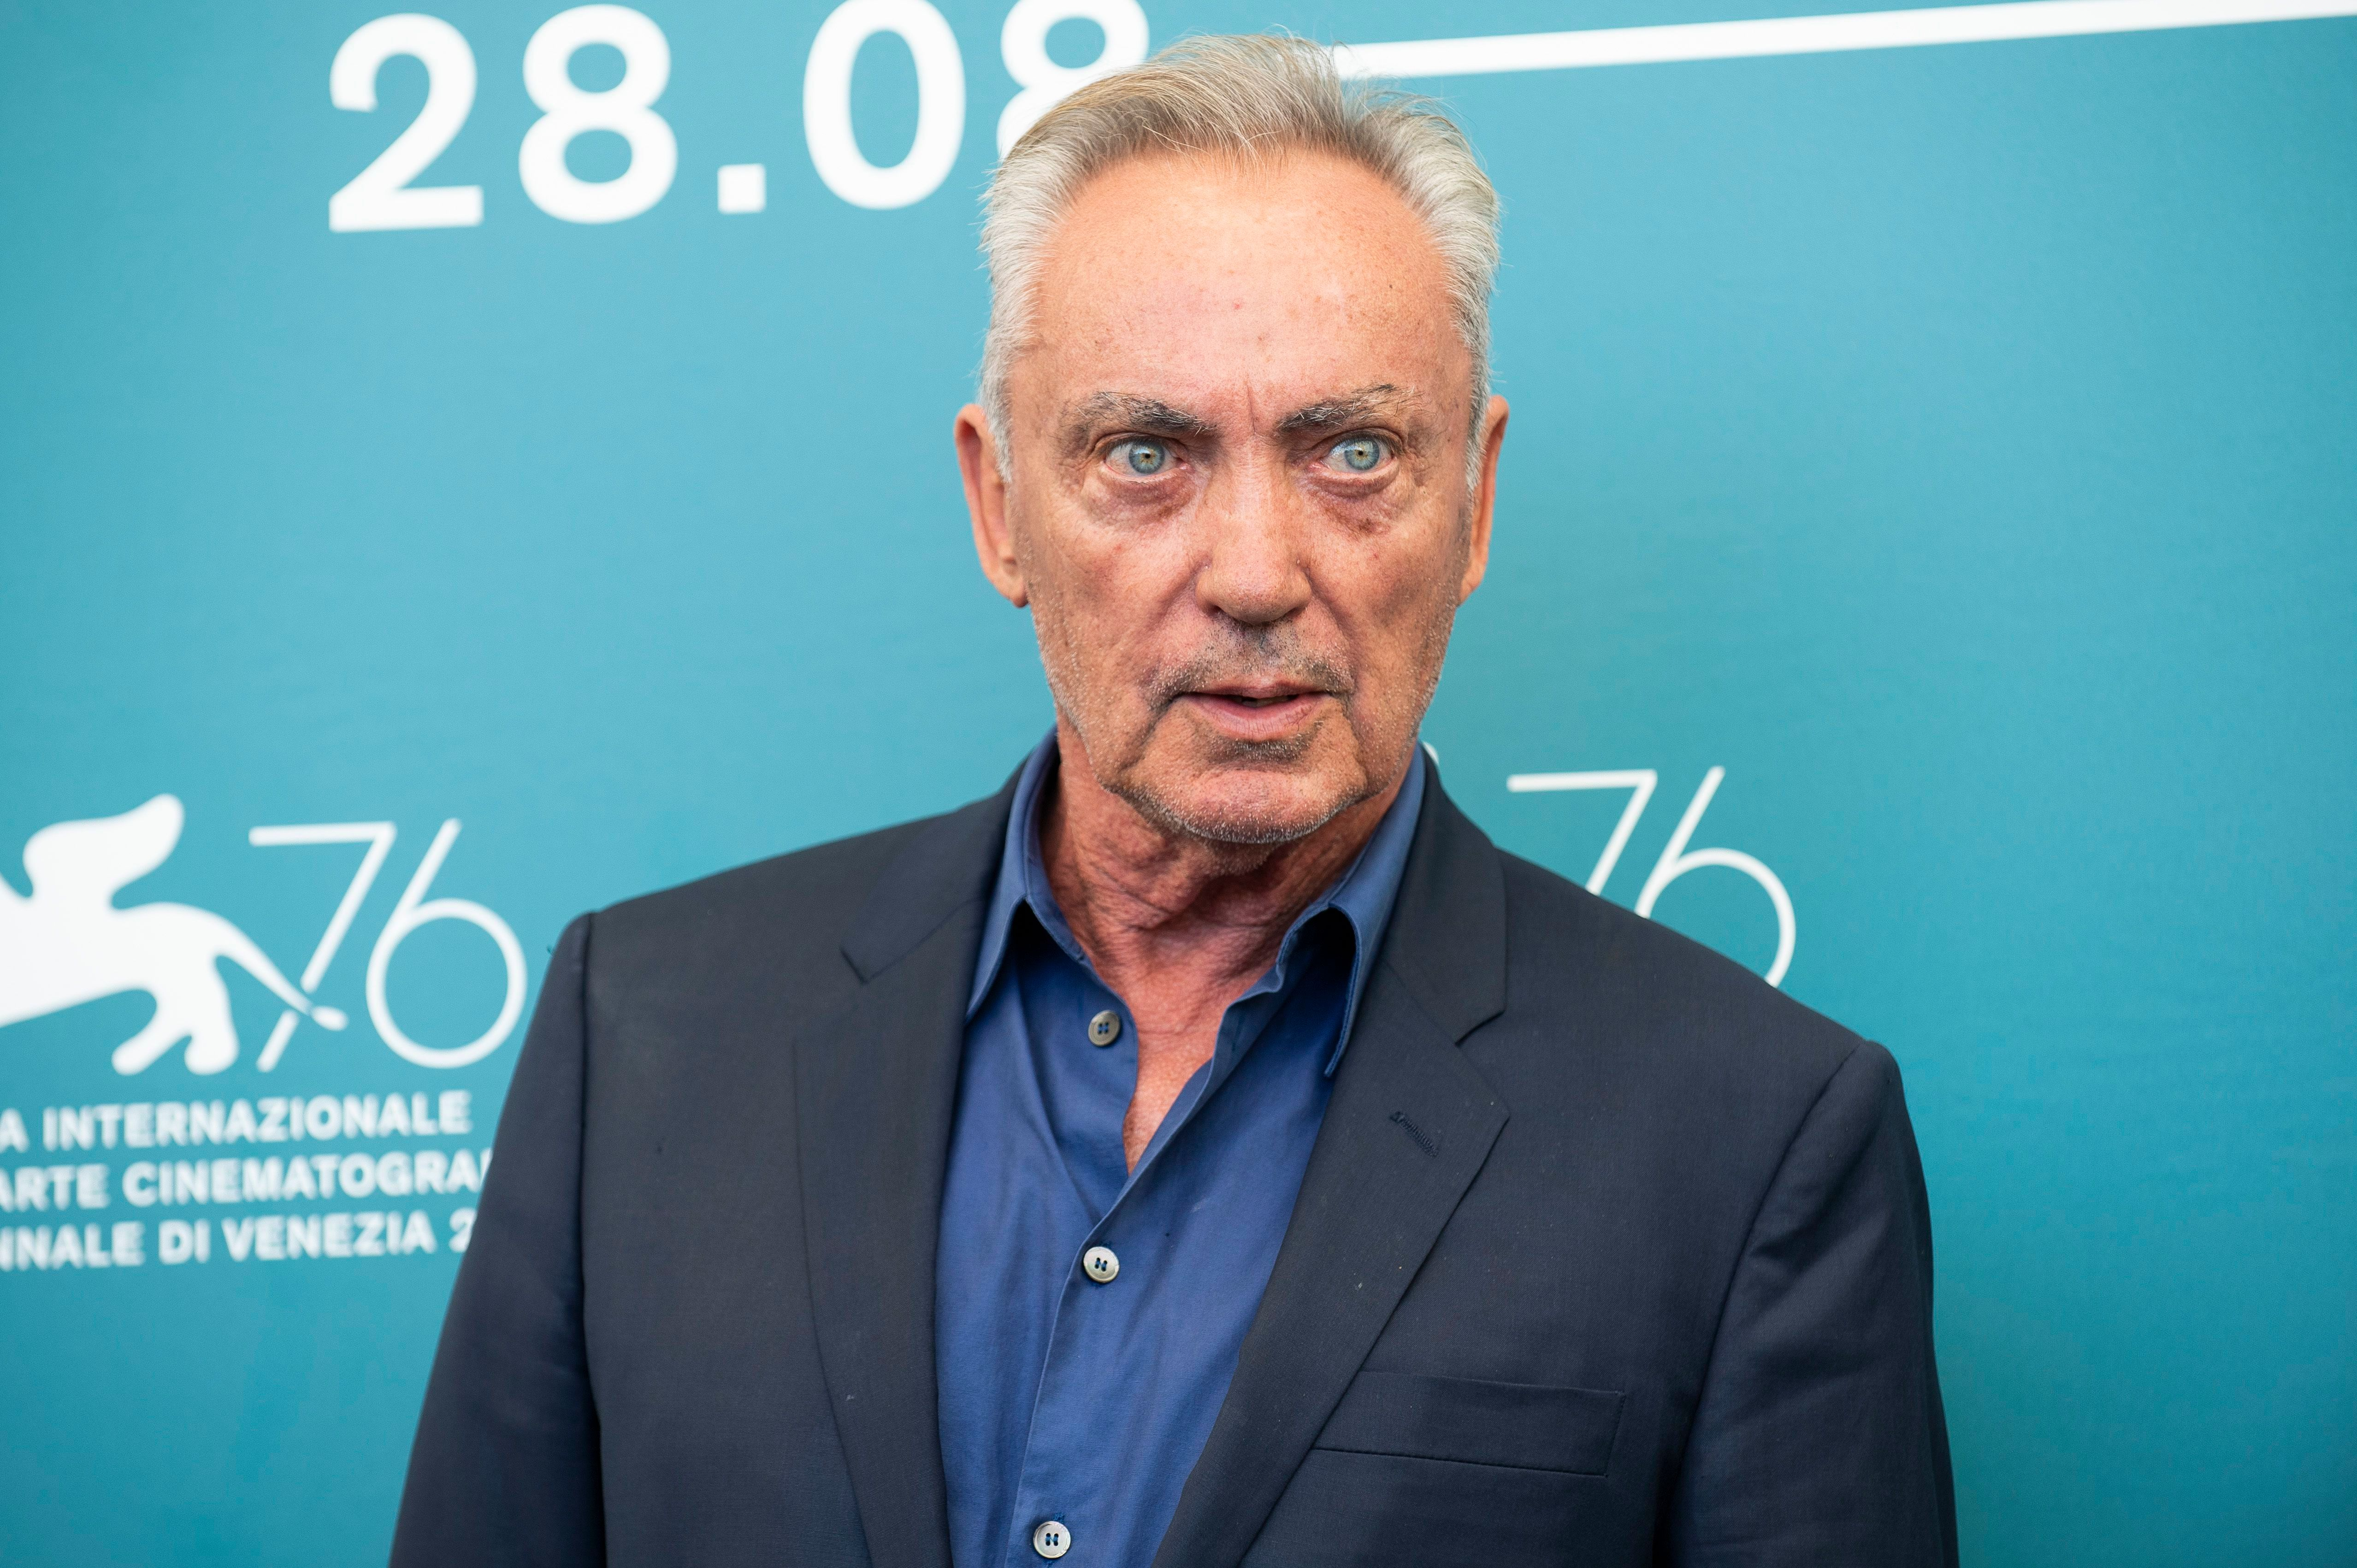 Udo Kier on Life Playing Degenerates, From 'Painted Bird' to Lars von Trier: 'I've Been to Hell Many Times'